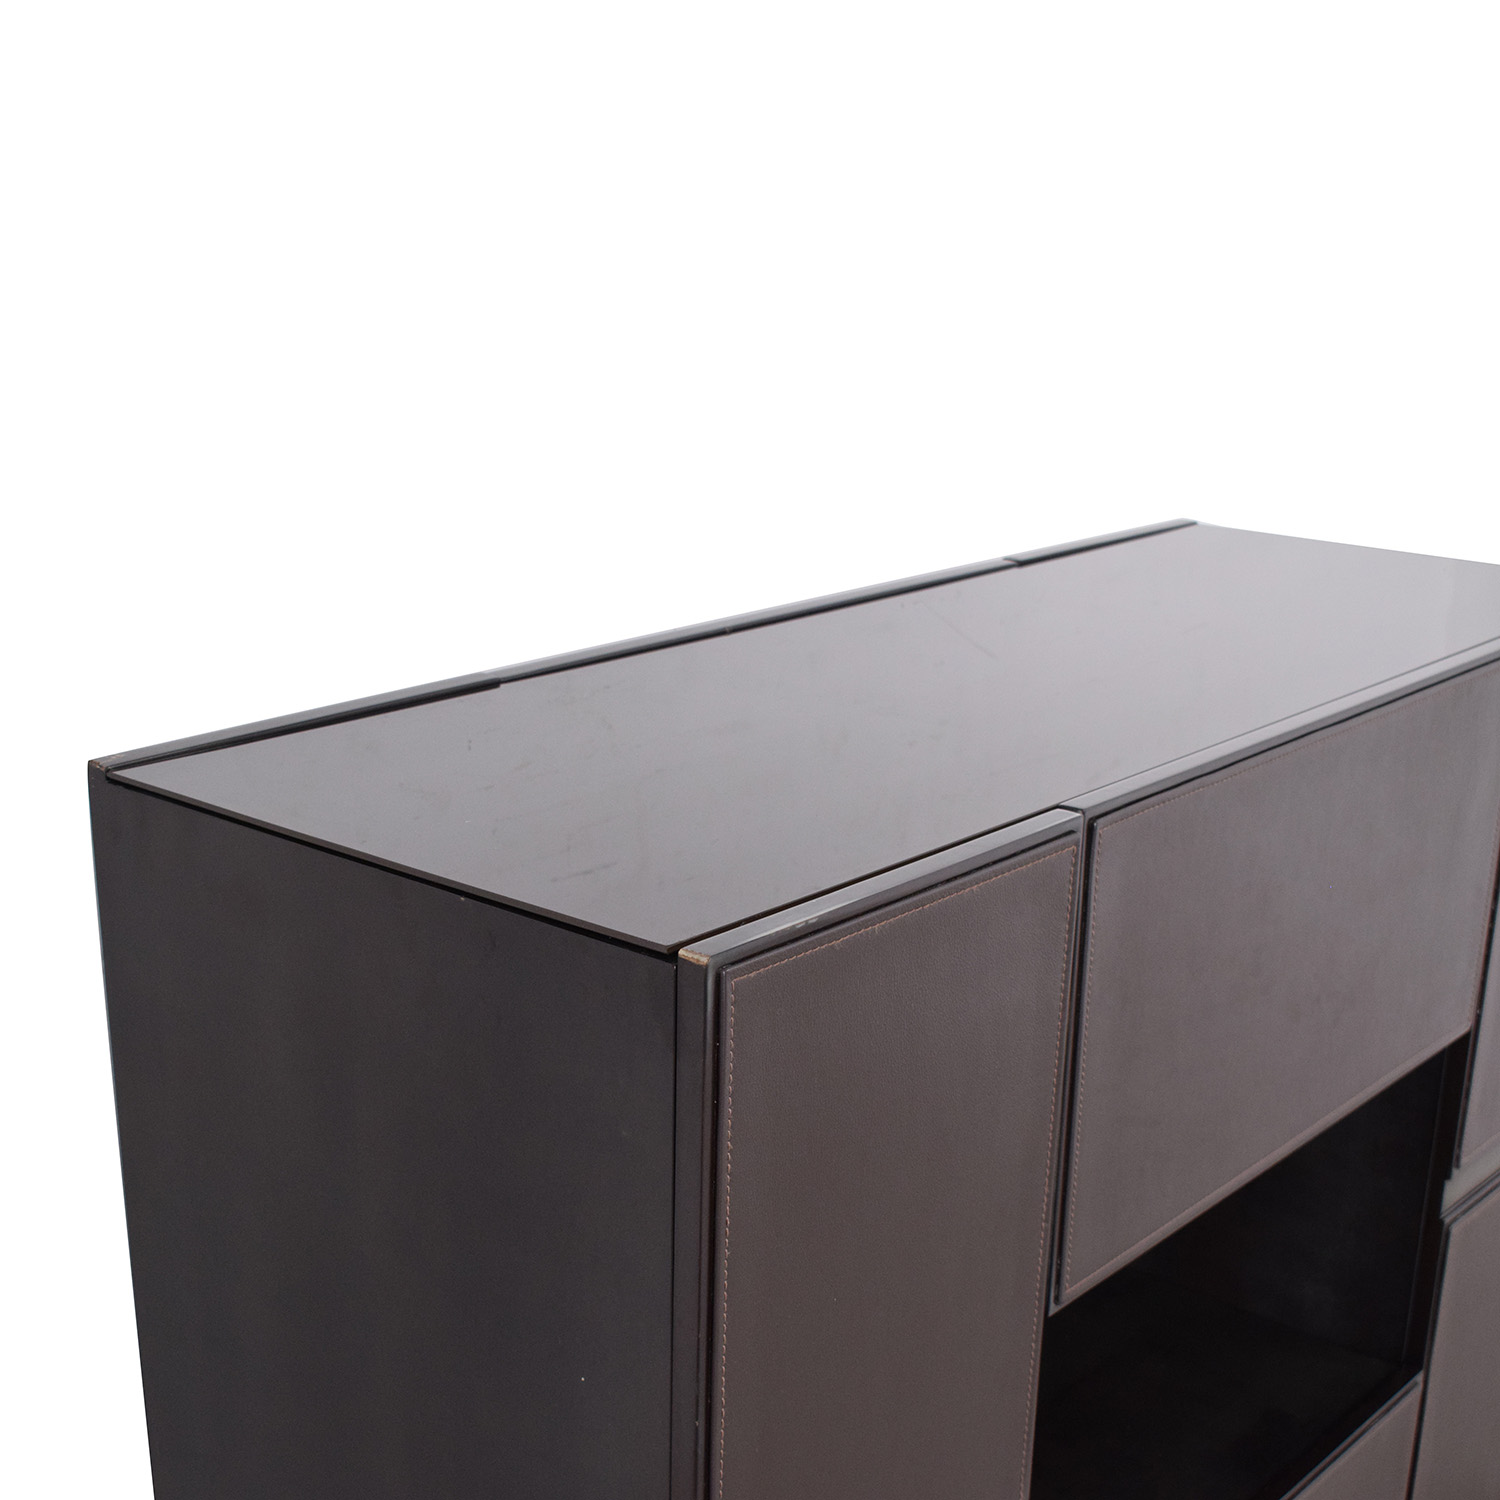 Moura Starr Moura Starr Bar Cabinet discount